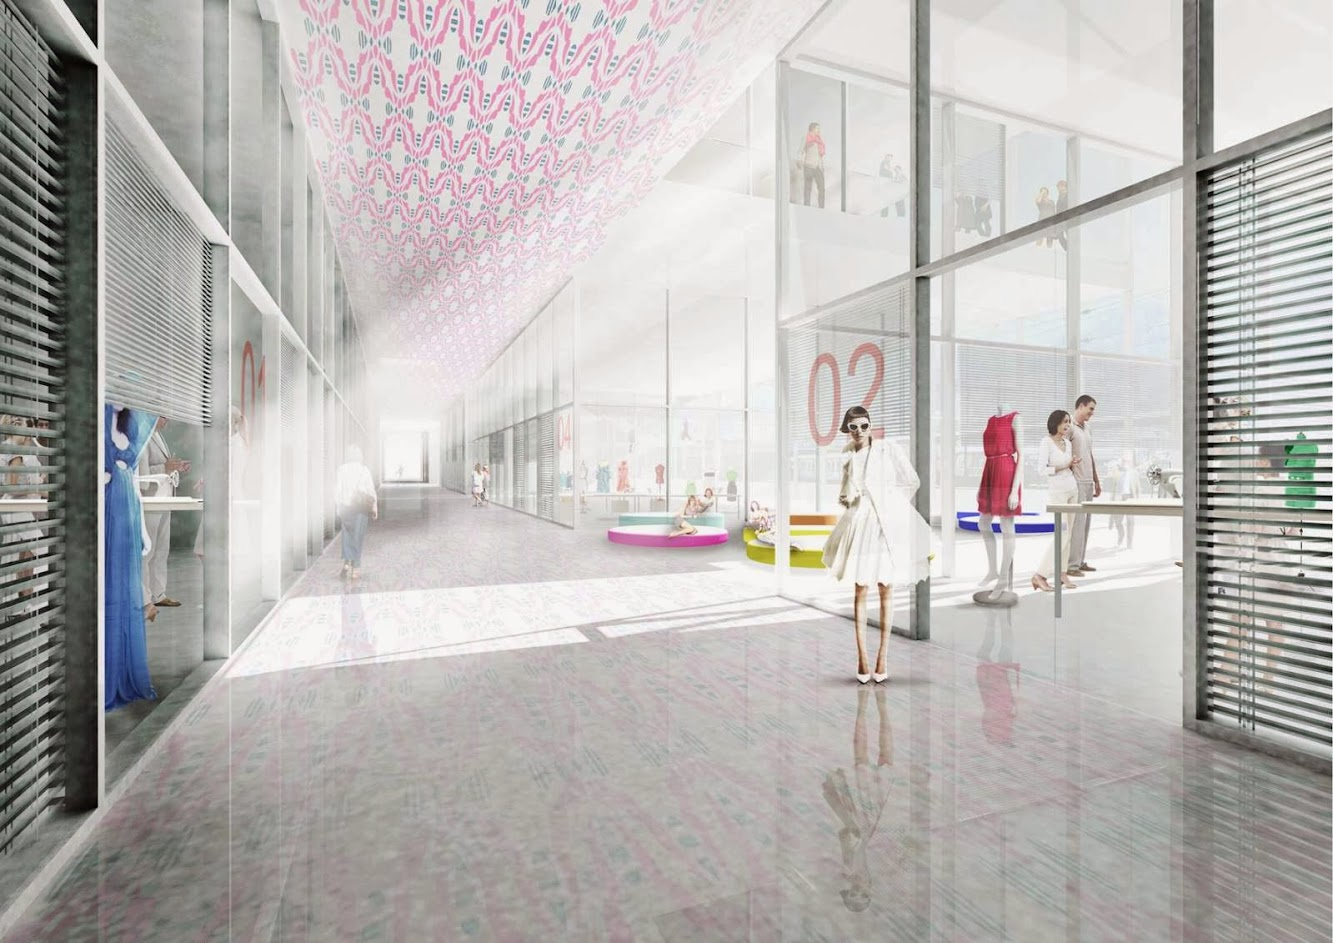 05-Antonio-Citterio-Patricia-Viel-and-C+S-Architects-Win-SAMS-STA-competition